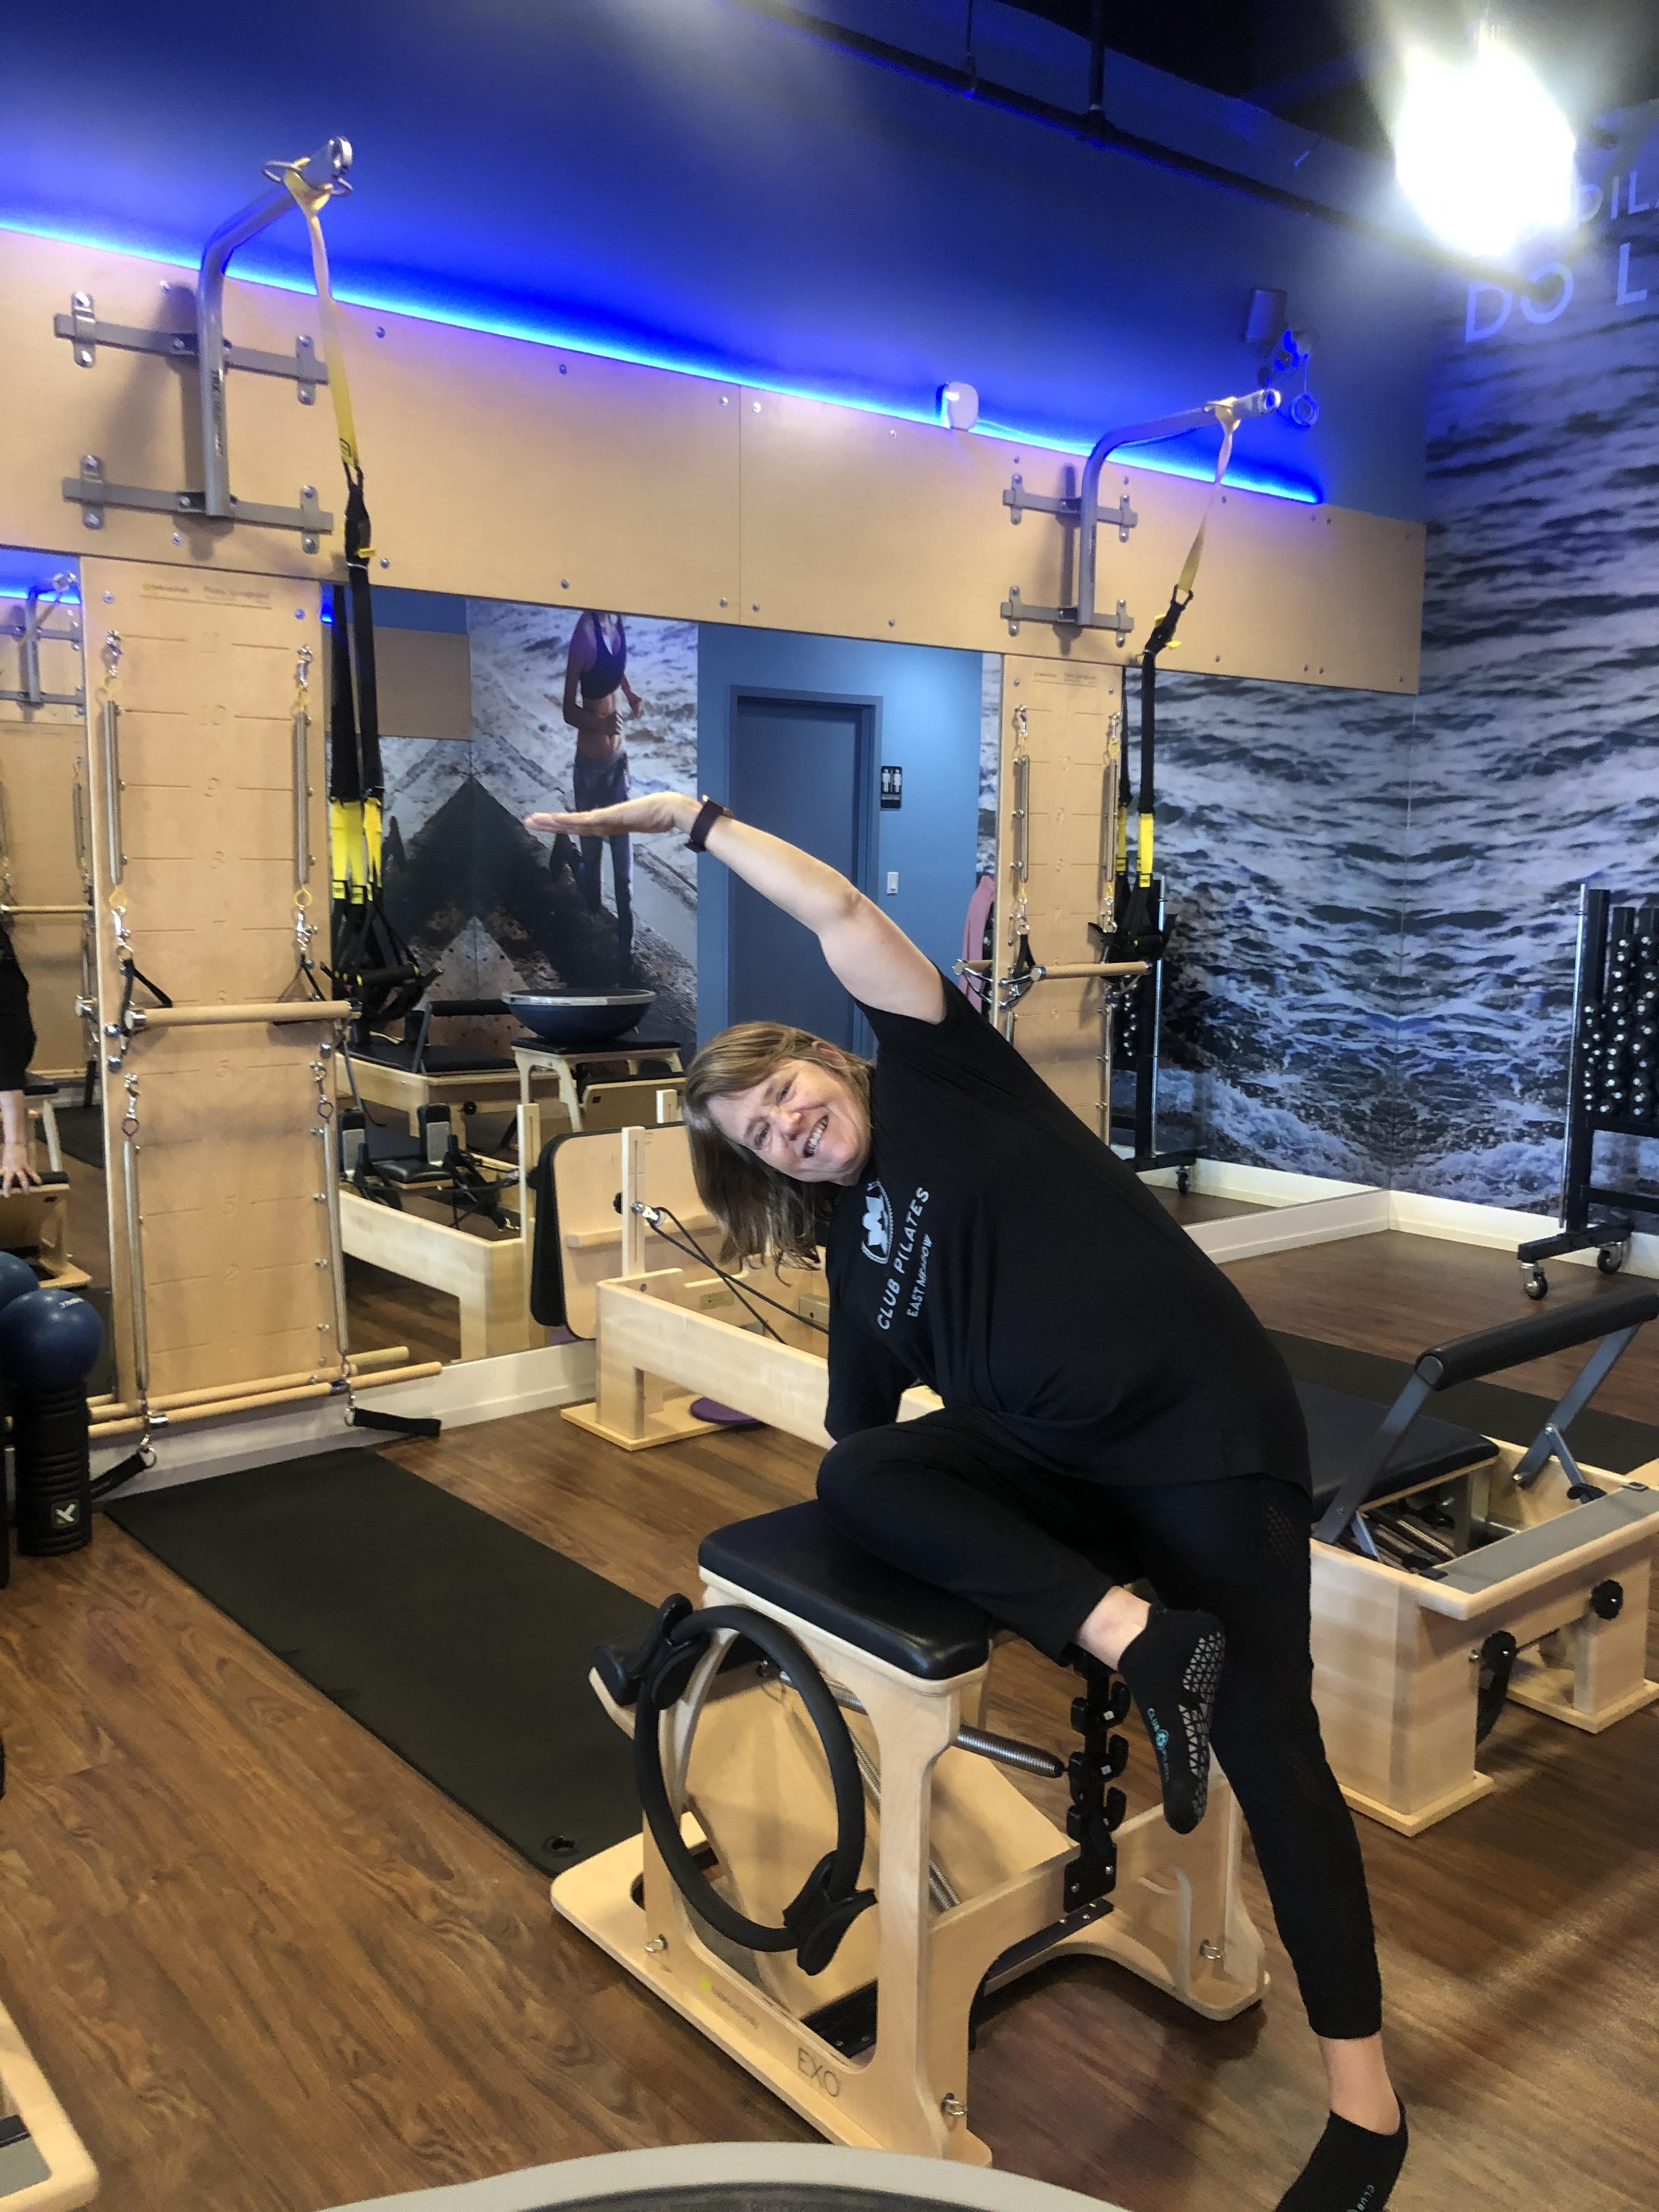 Finding A Workout That Works For Me - Eileen's Story